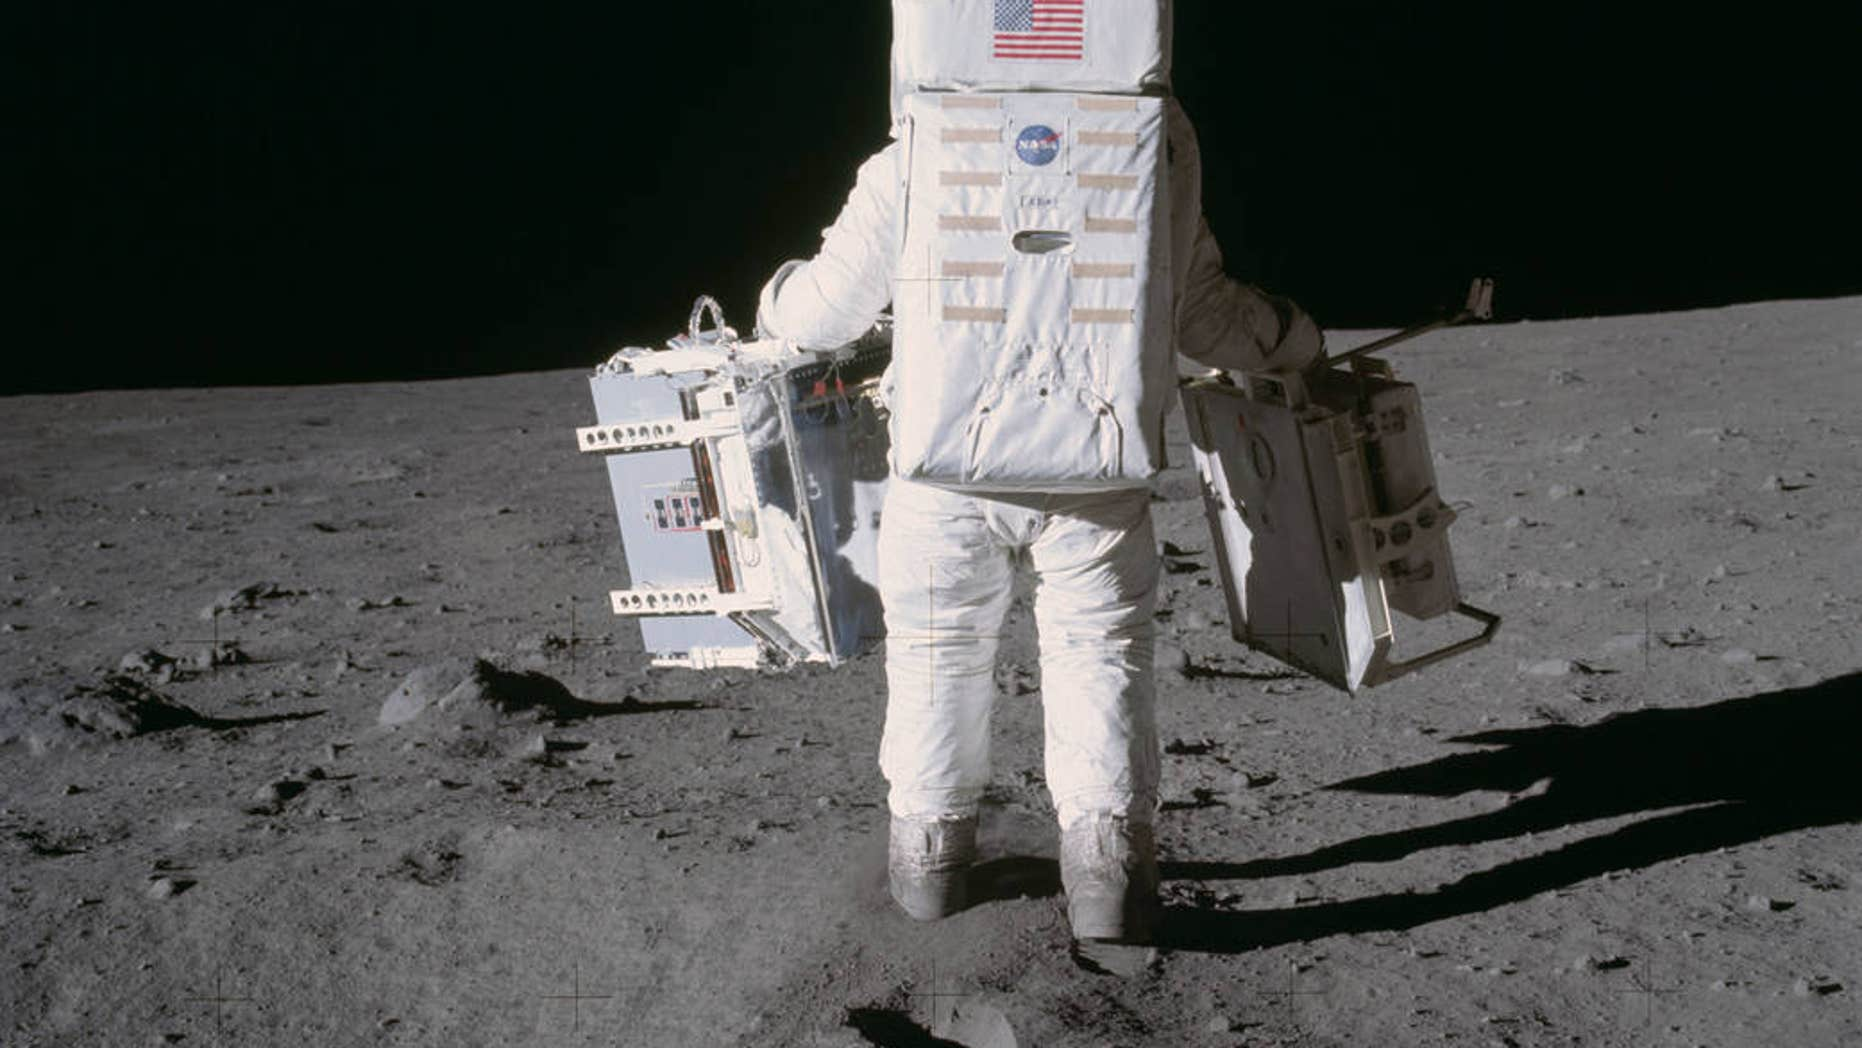 Buzz Aldrin on the moon, carrying two scientific instruments.